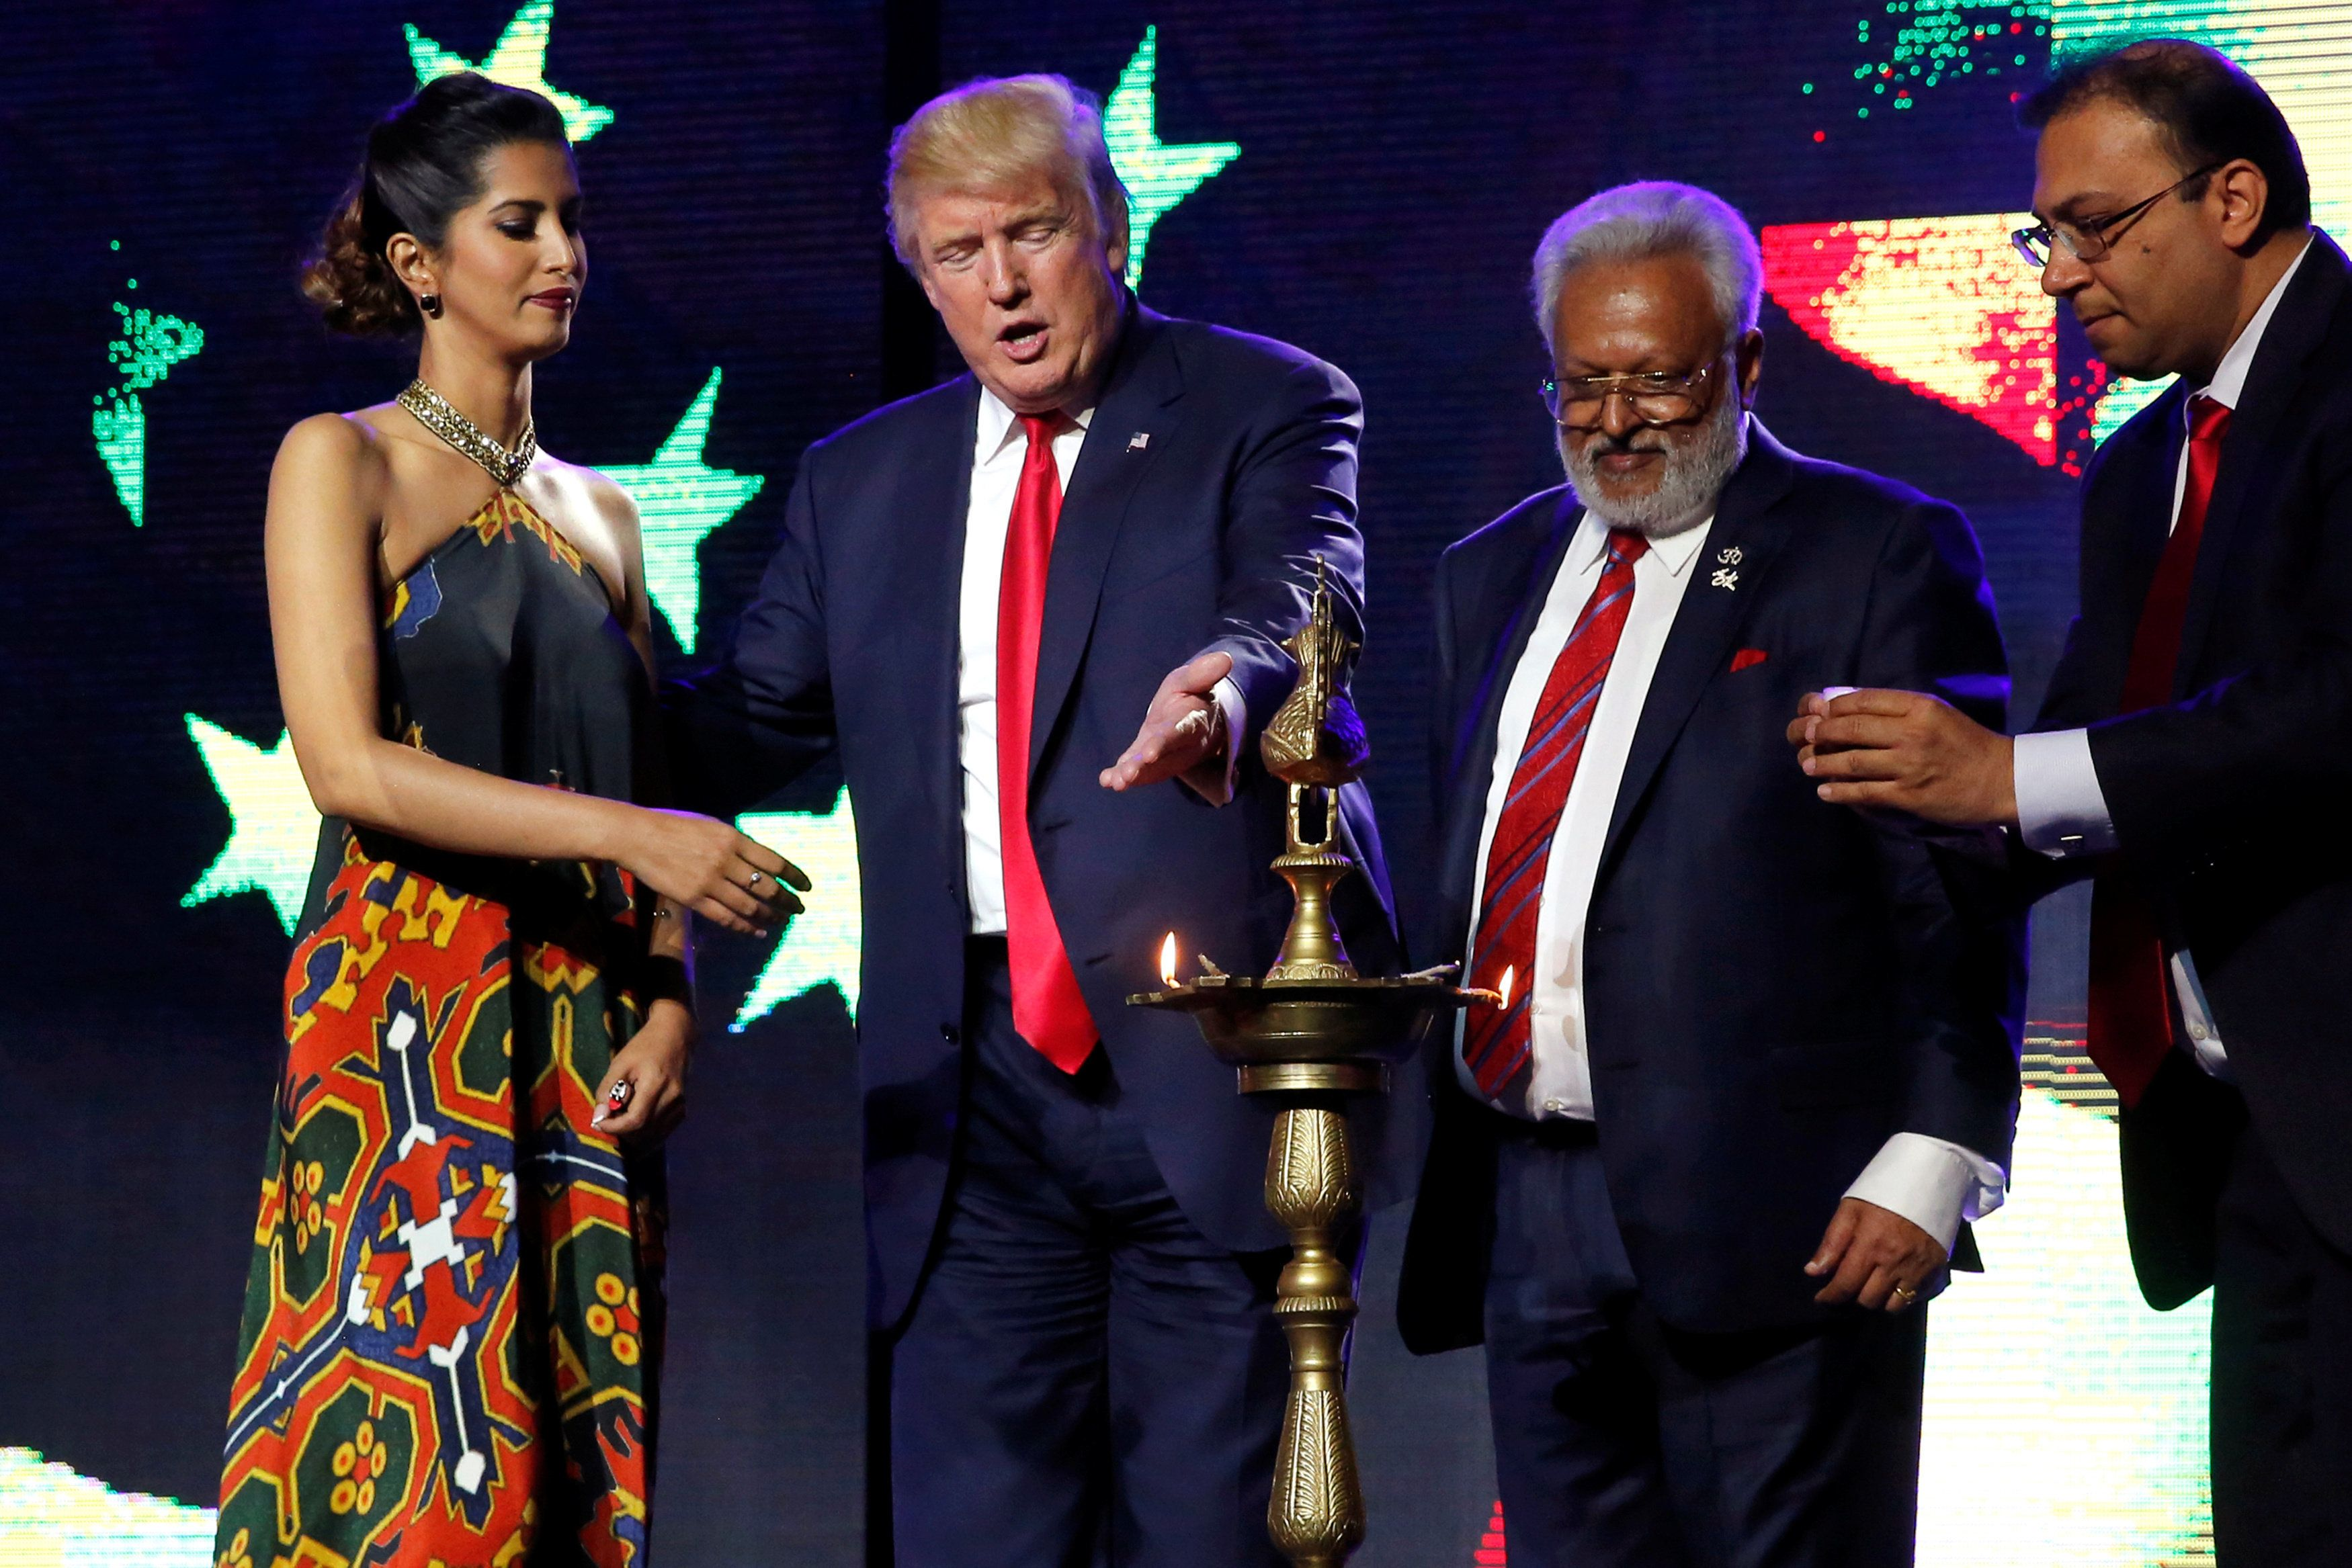 Republican presidential nominee Donald Trump (2nd L) enlists the help of Republican Hindu Coalition Chairman Shalli Kumar (2nd R) and others to light a ceremonial diya lamp before he speaks at a Bollywood-themed charity concert put on by the Republican Hindu Coalition in Edison, New Jersey, U.S. October 15, 2016. REUTERS/Jonathan Ernst